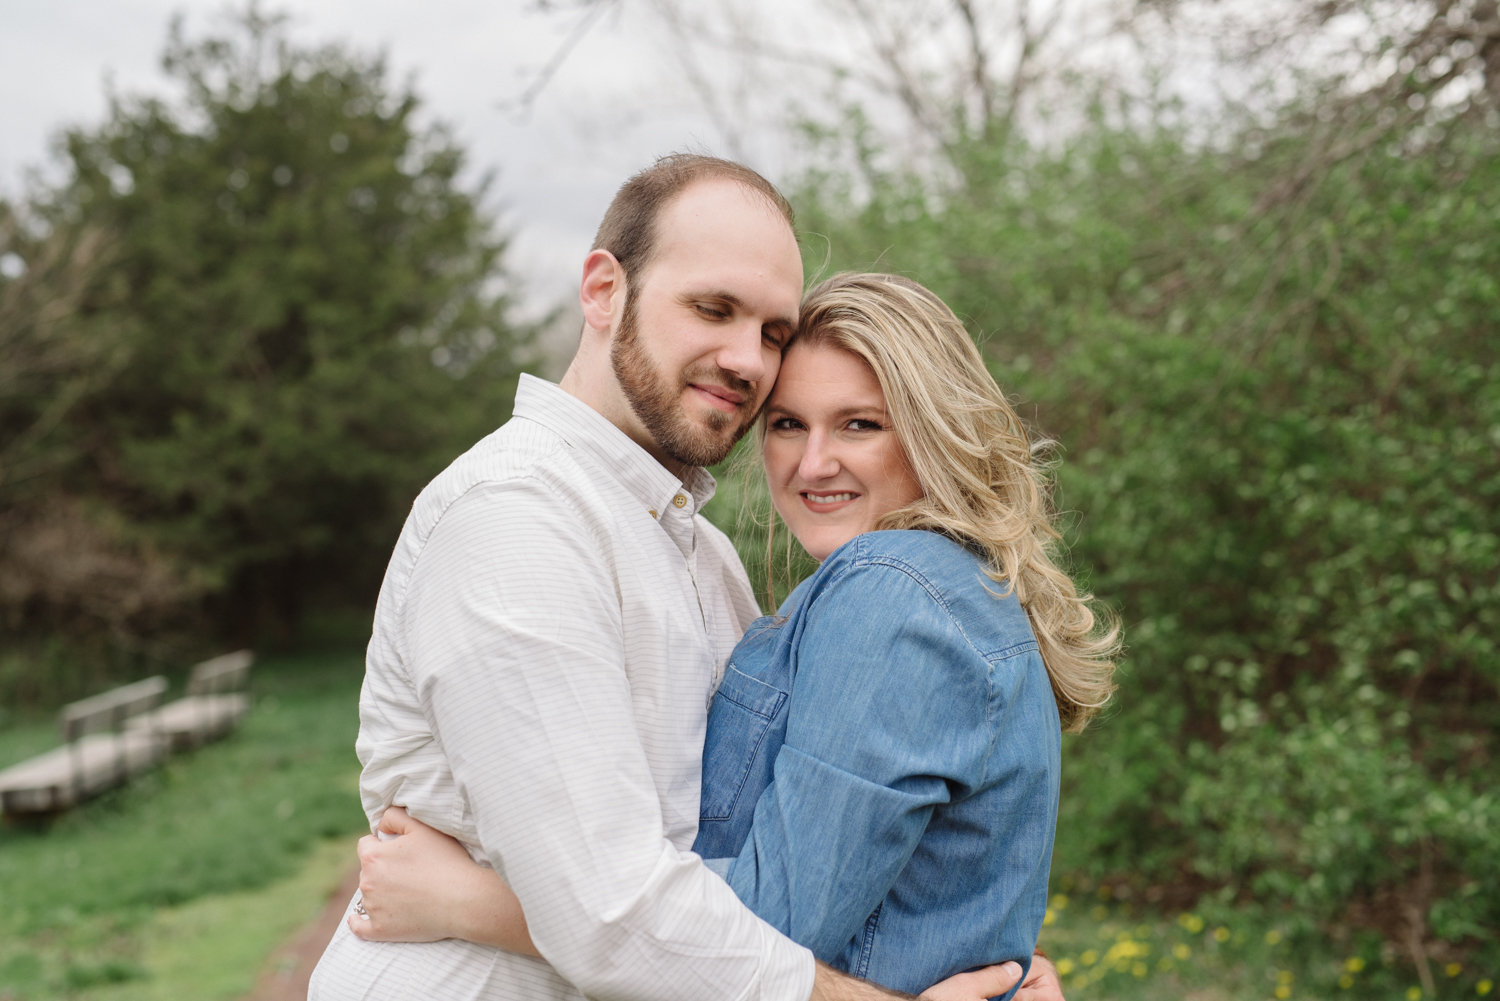 Matt+Melissa- Meadowlands Environmental Center Engagement Session- New Jersey- Olivia Christina Photo-61.JPG